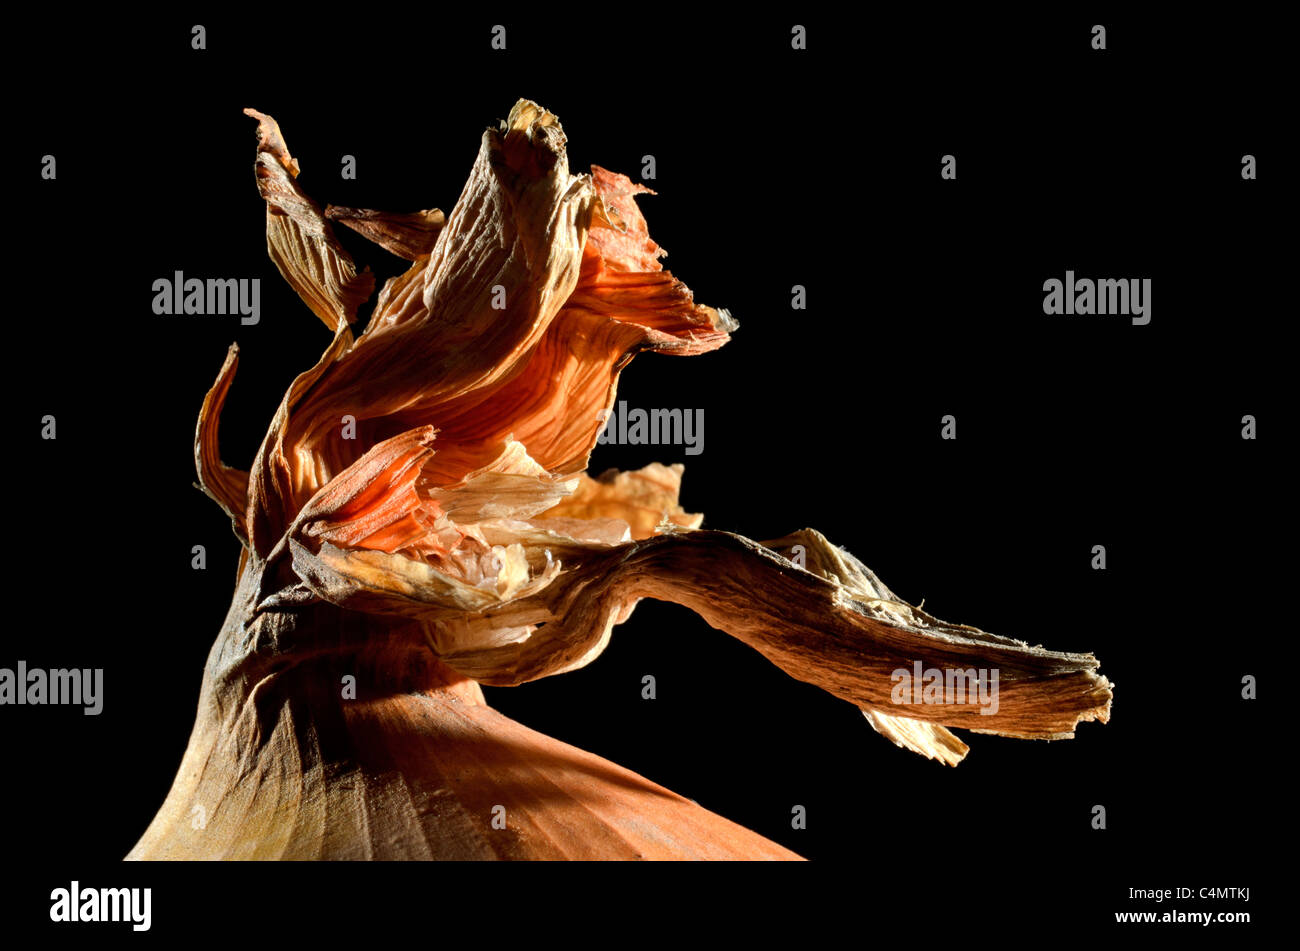 Onion detail - Stock Image